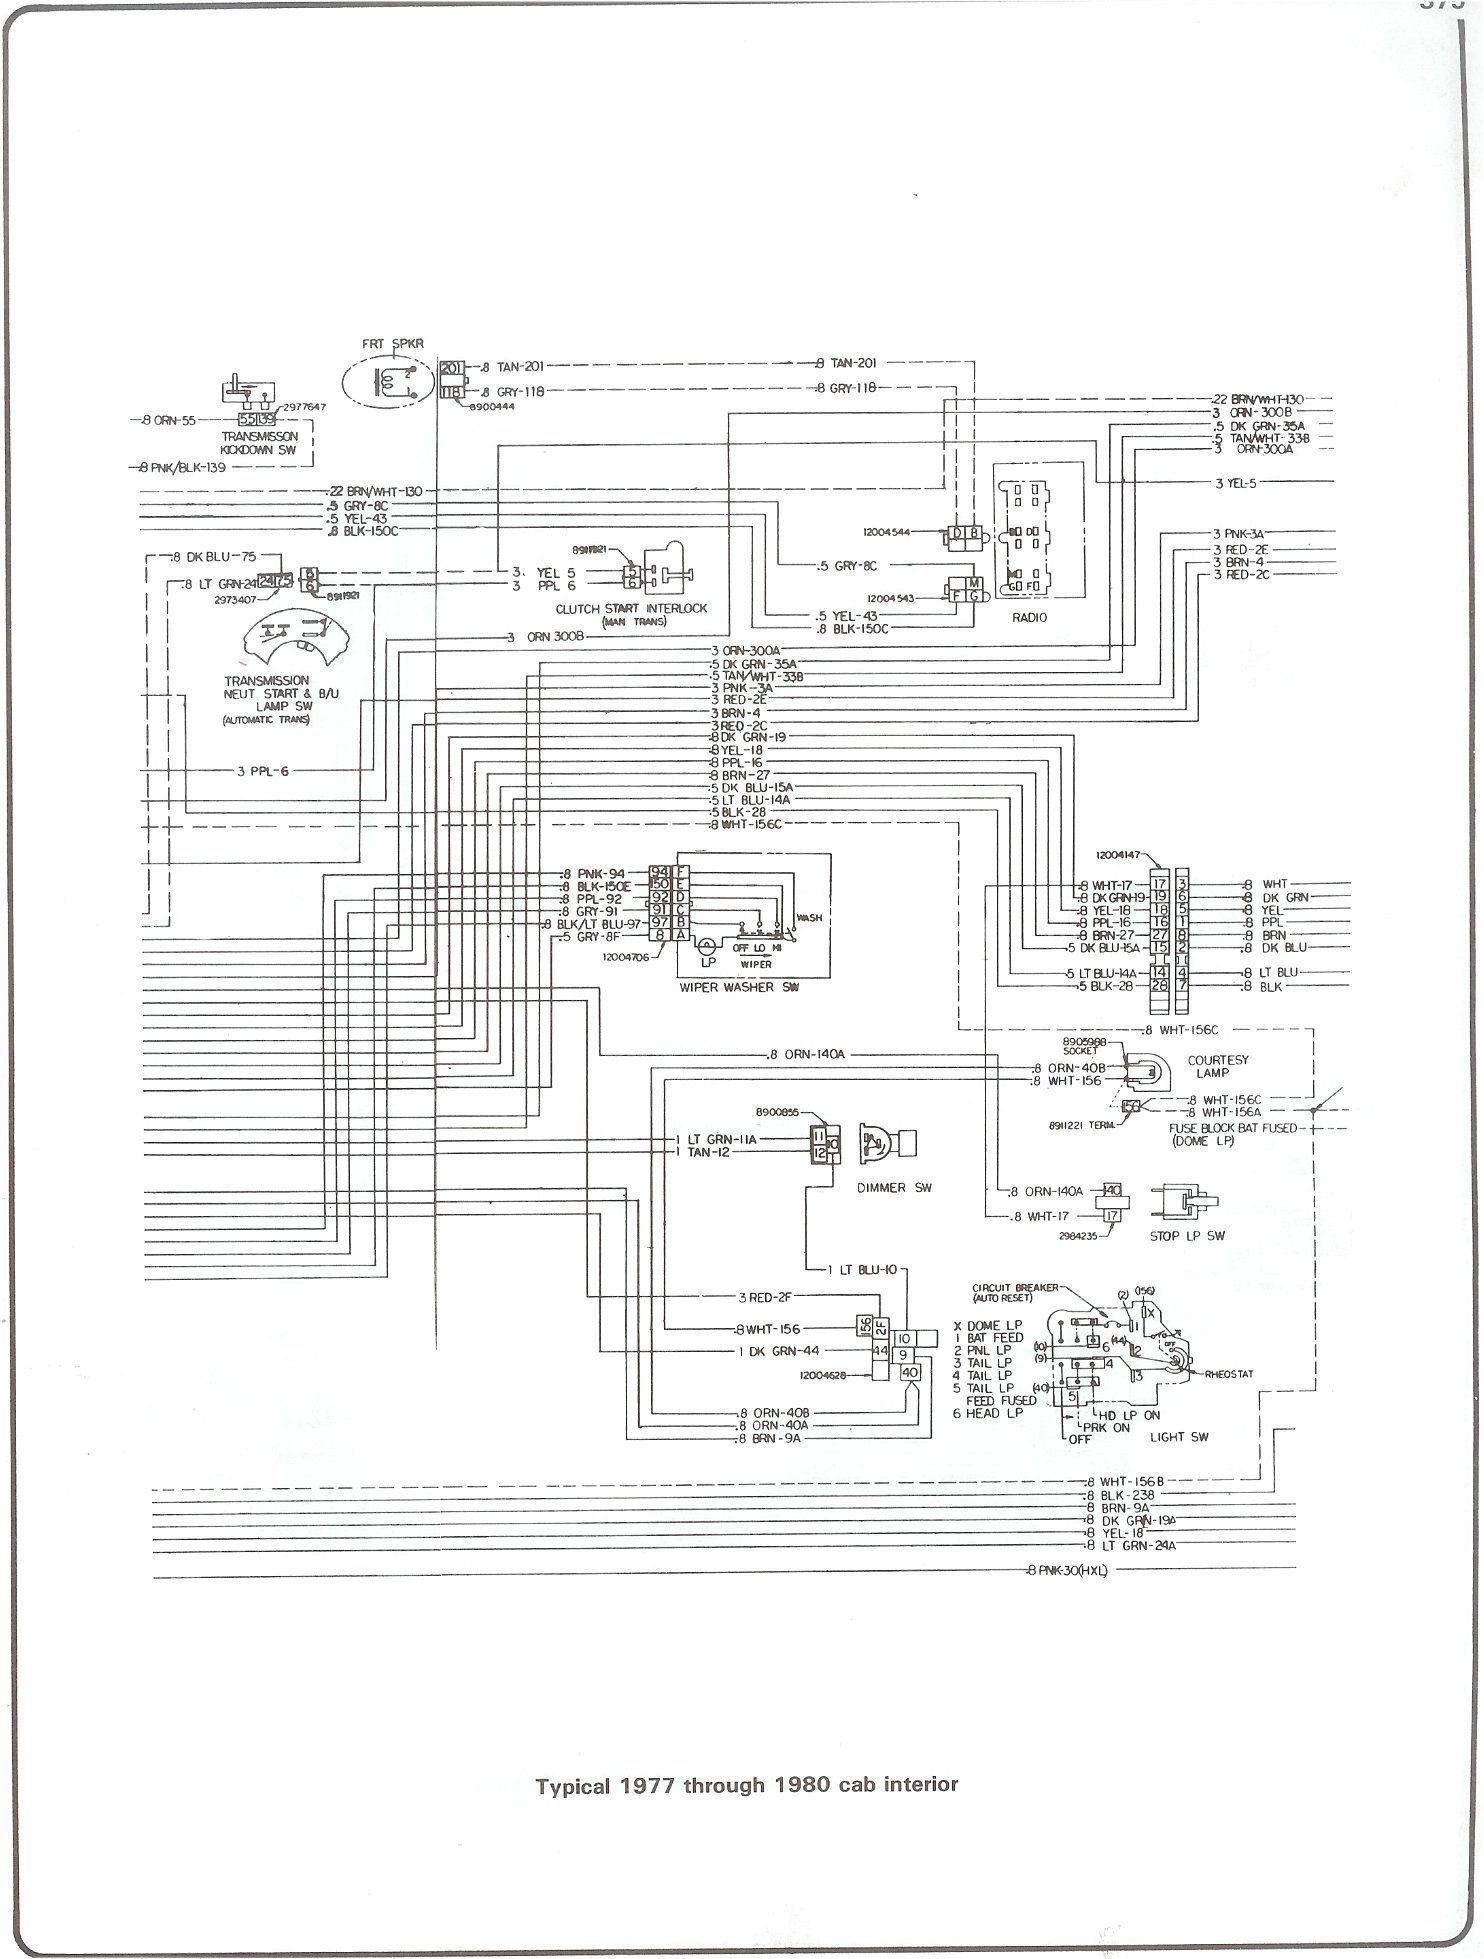 77 80_cab_inter complete 73 87 wiring diagrams Ford Alternator Wiring Diagram at reclaimingppi.co